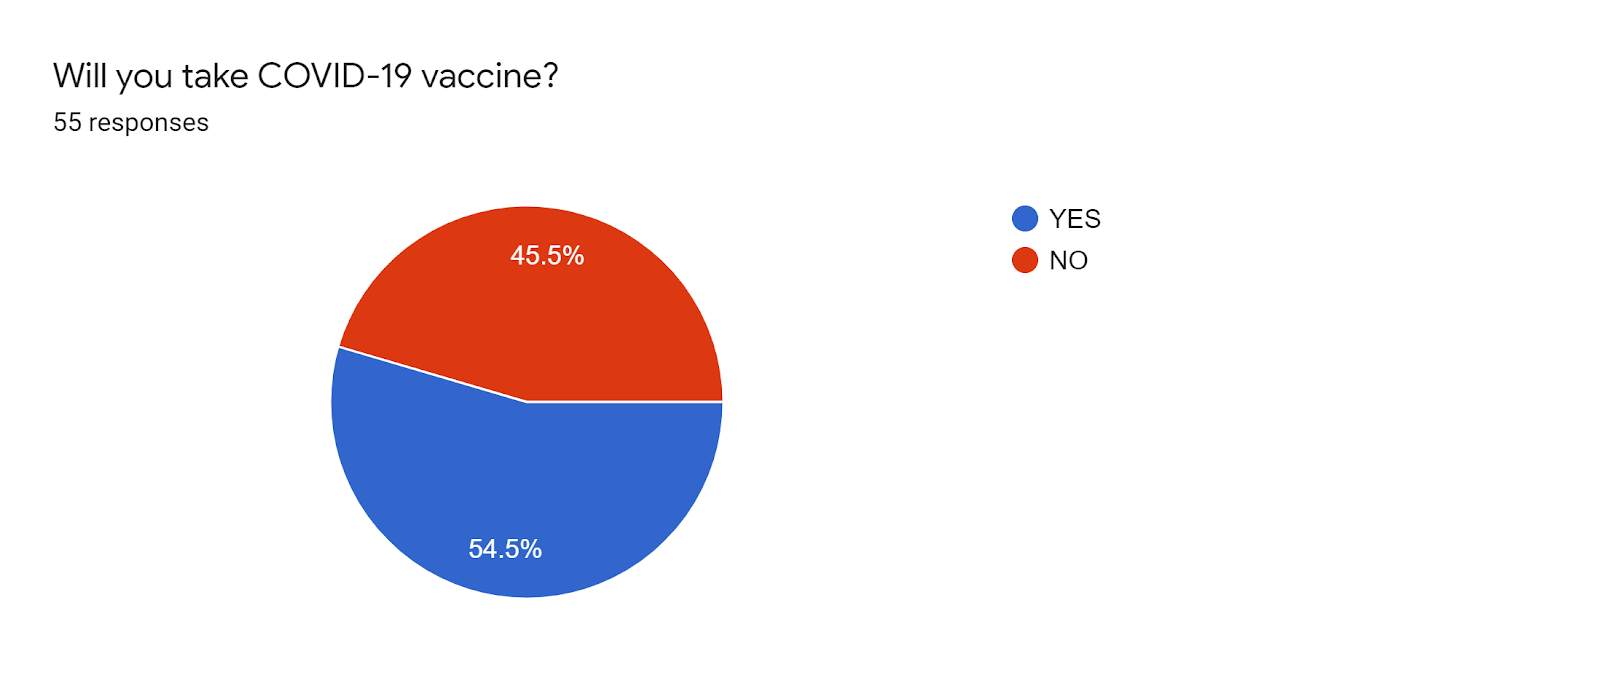 Forms response chart. Question title: Will you take COVID-19 vaccine?. Number of responses: 55 responses.